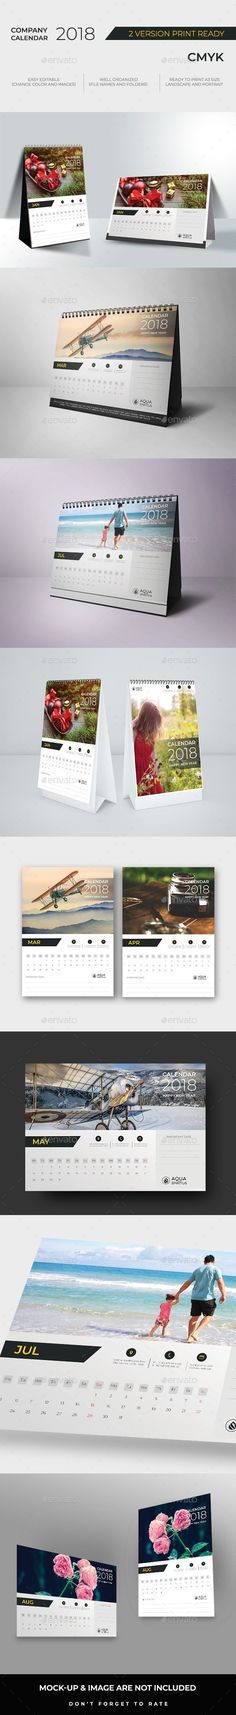 Wall Calendars — Photoshop PSD #design #2018 Calendar • Available here ➝ https://graphicriver.net/item/wall-calendars/21004760?ref=pxcr